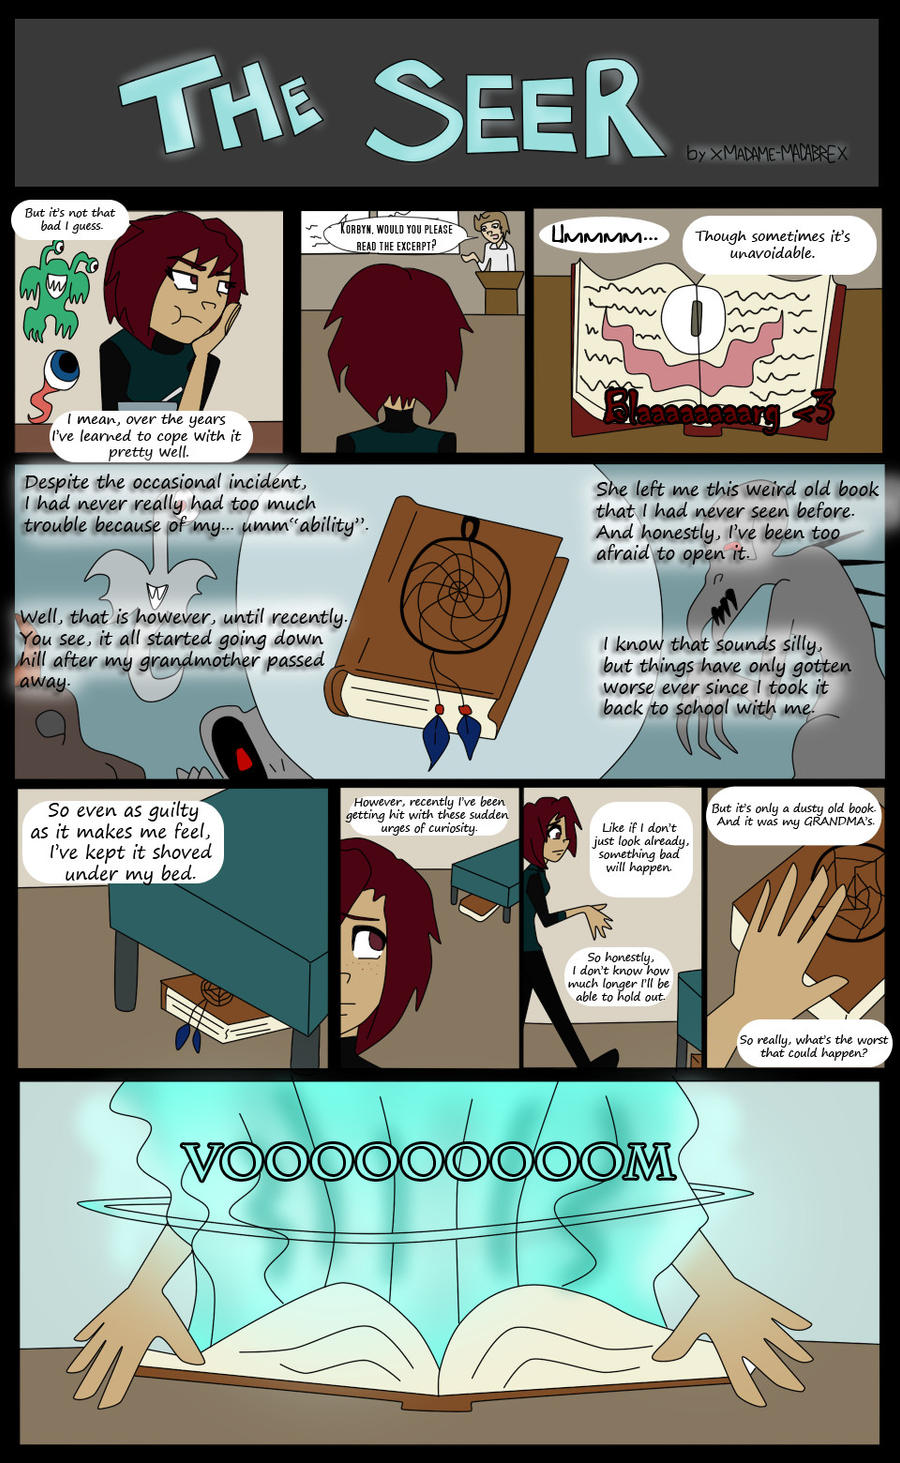 The Seer Page 2 By Xmadame Macabrex On Deviantart